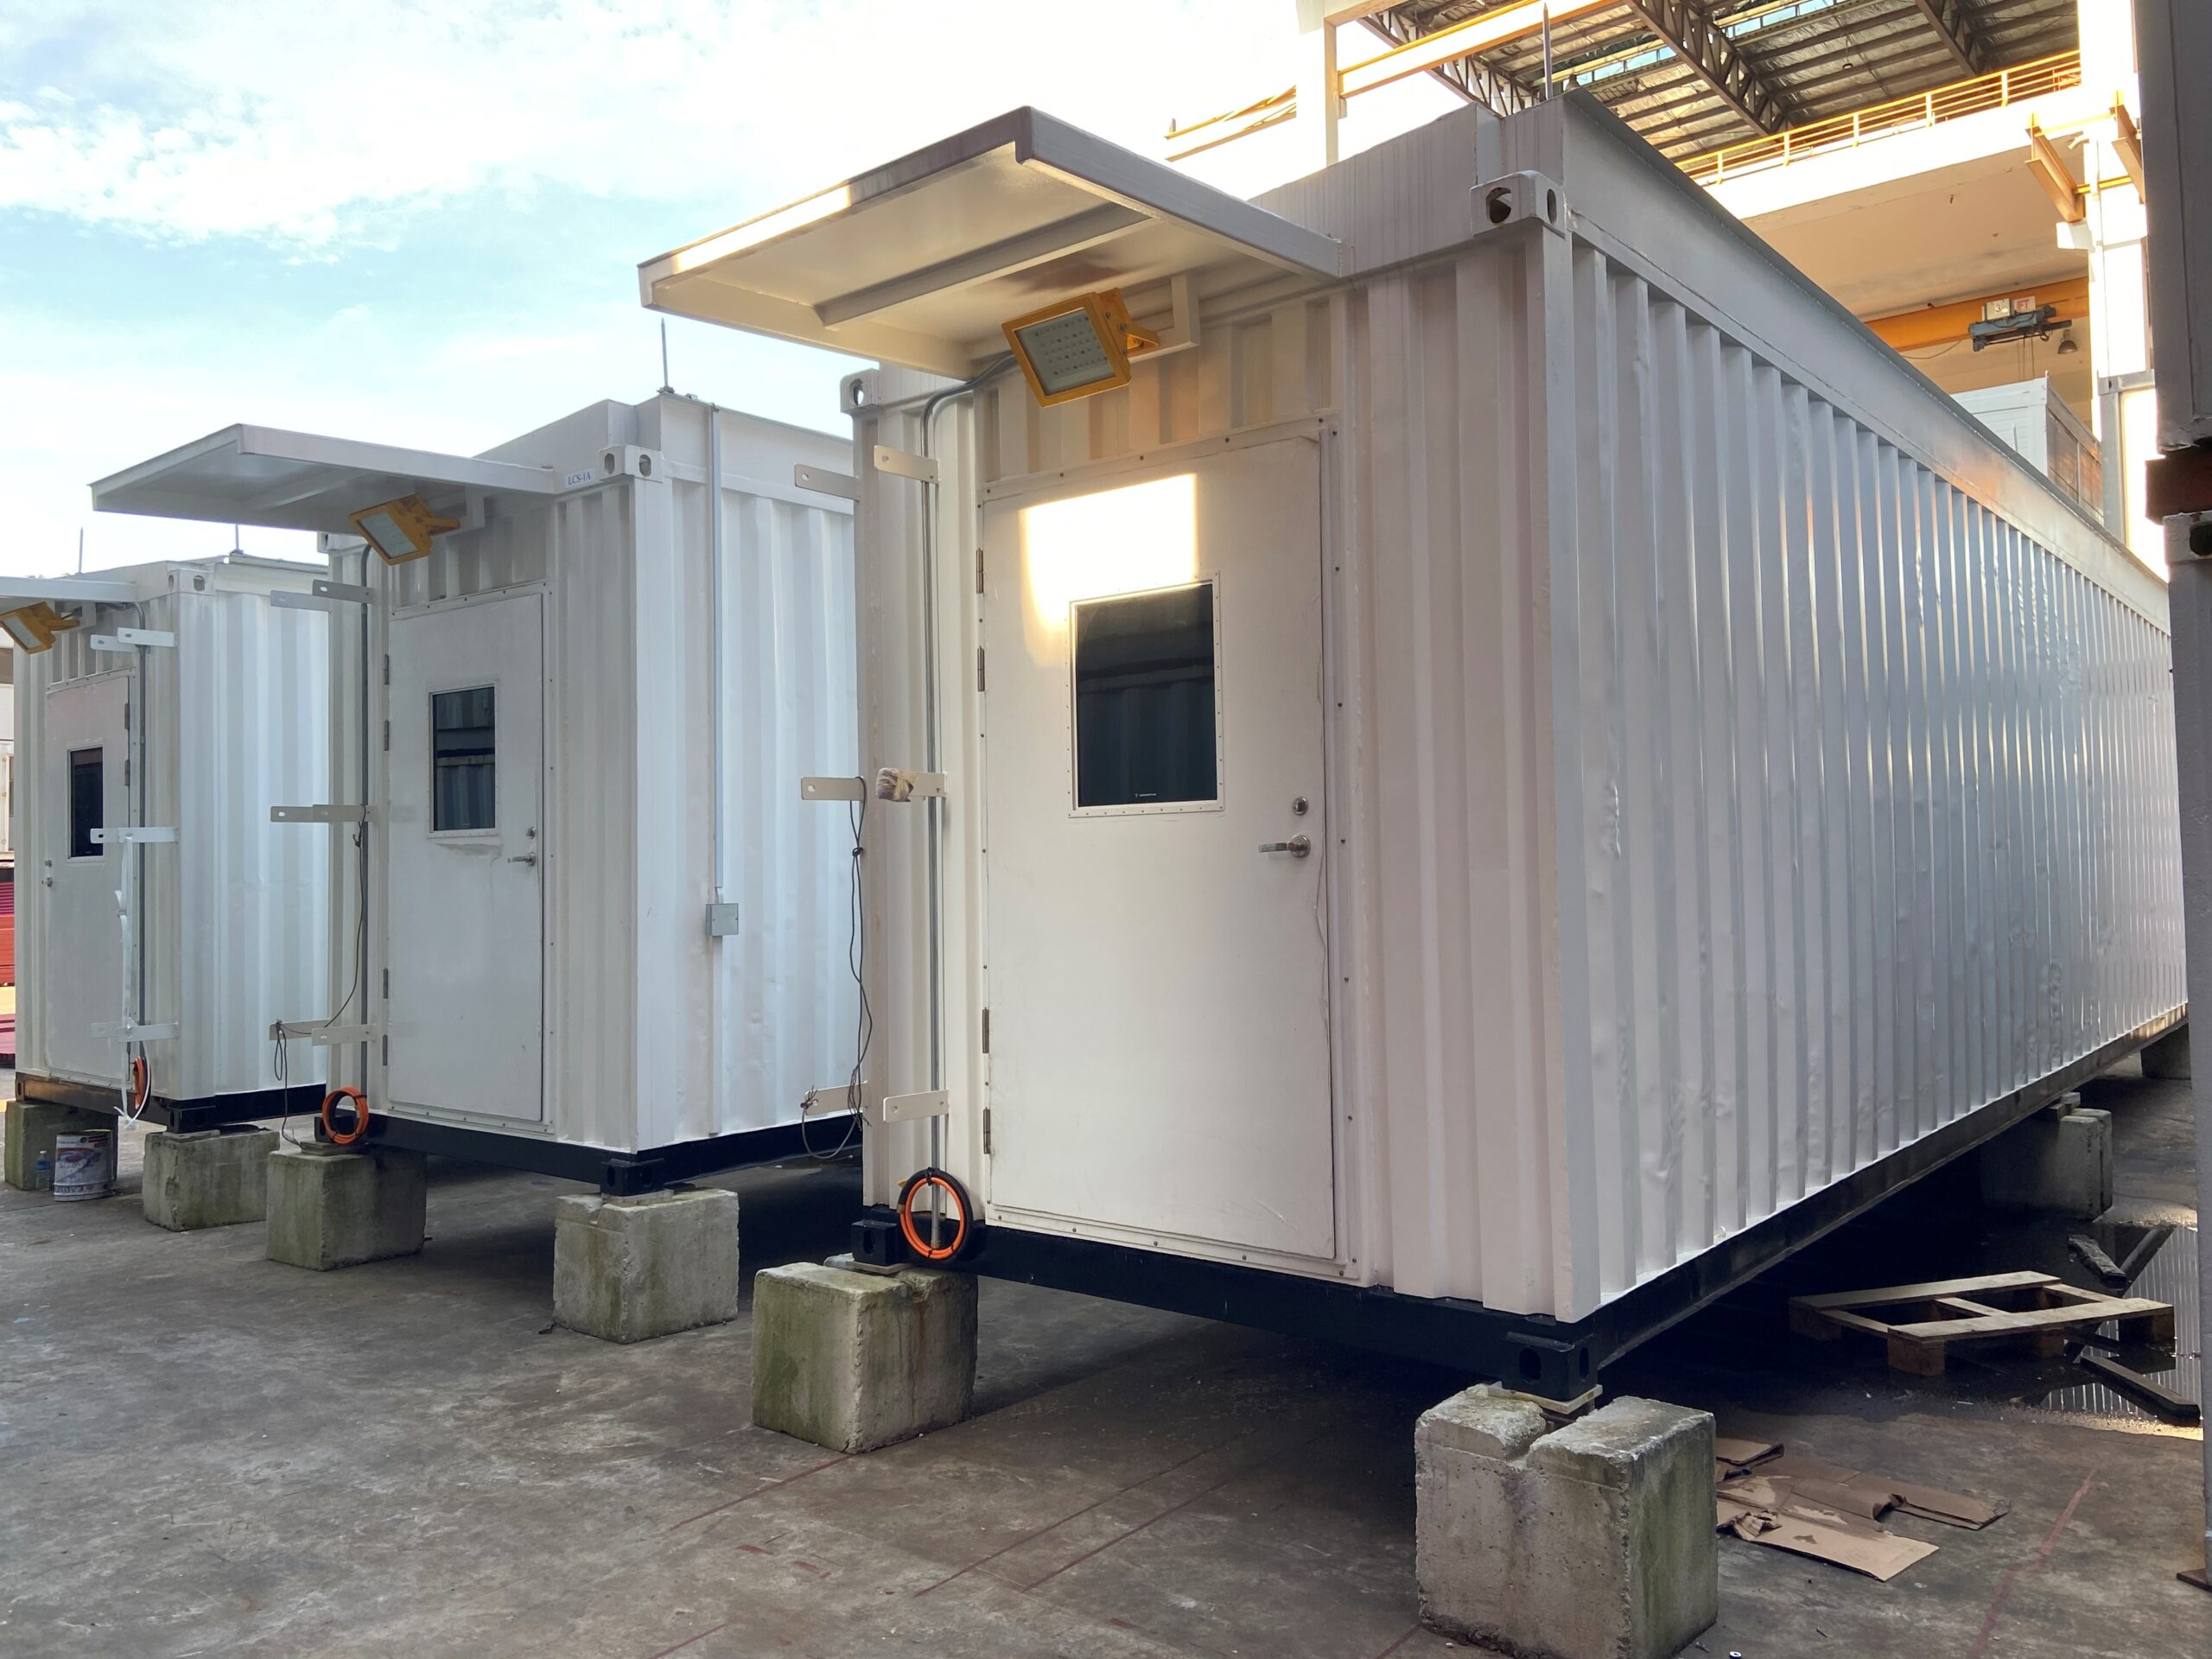 Rental of containers | Anderco